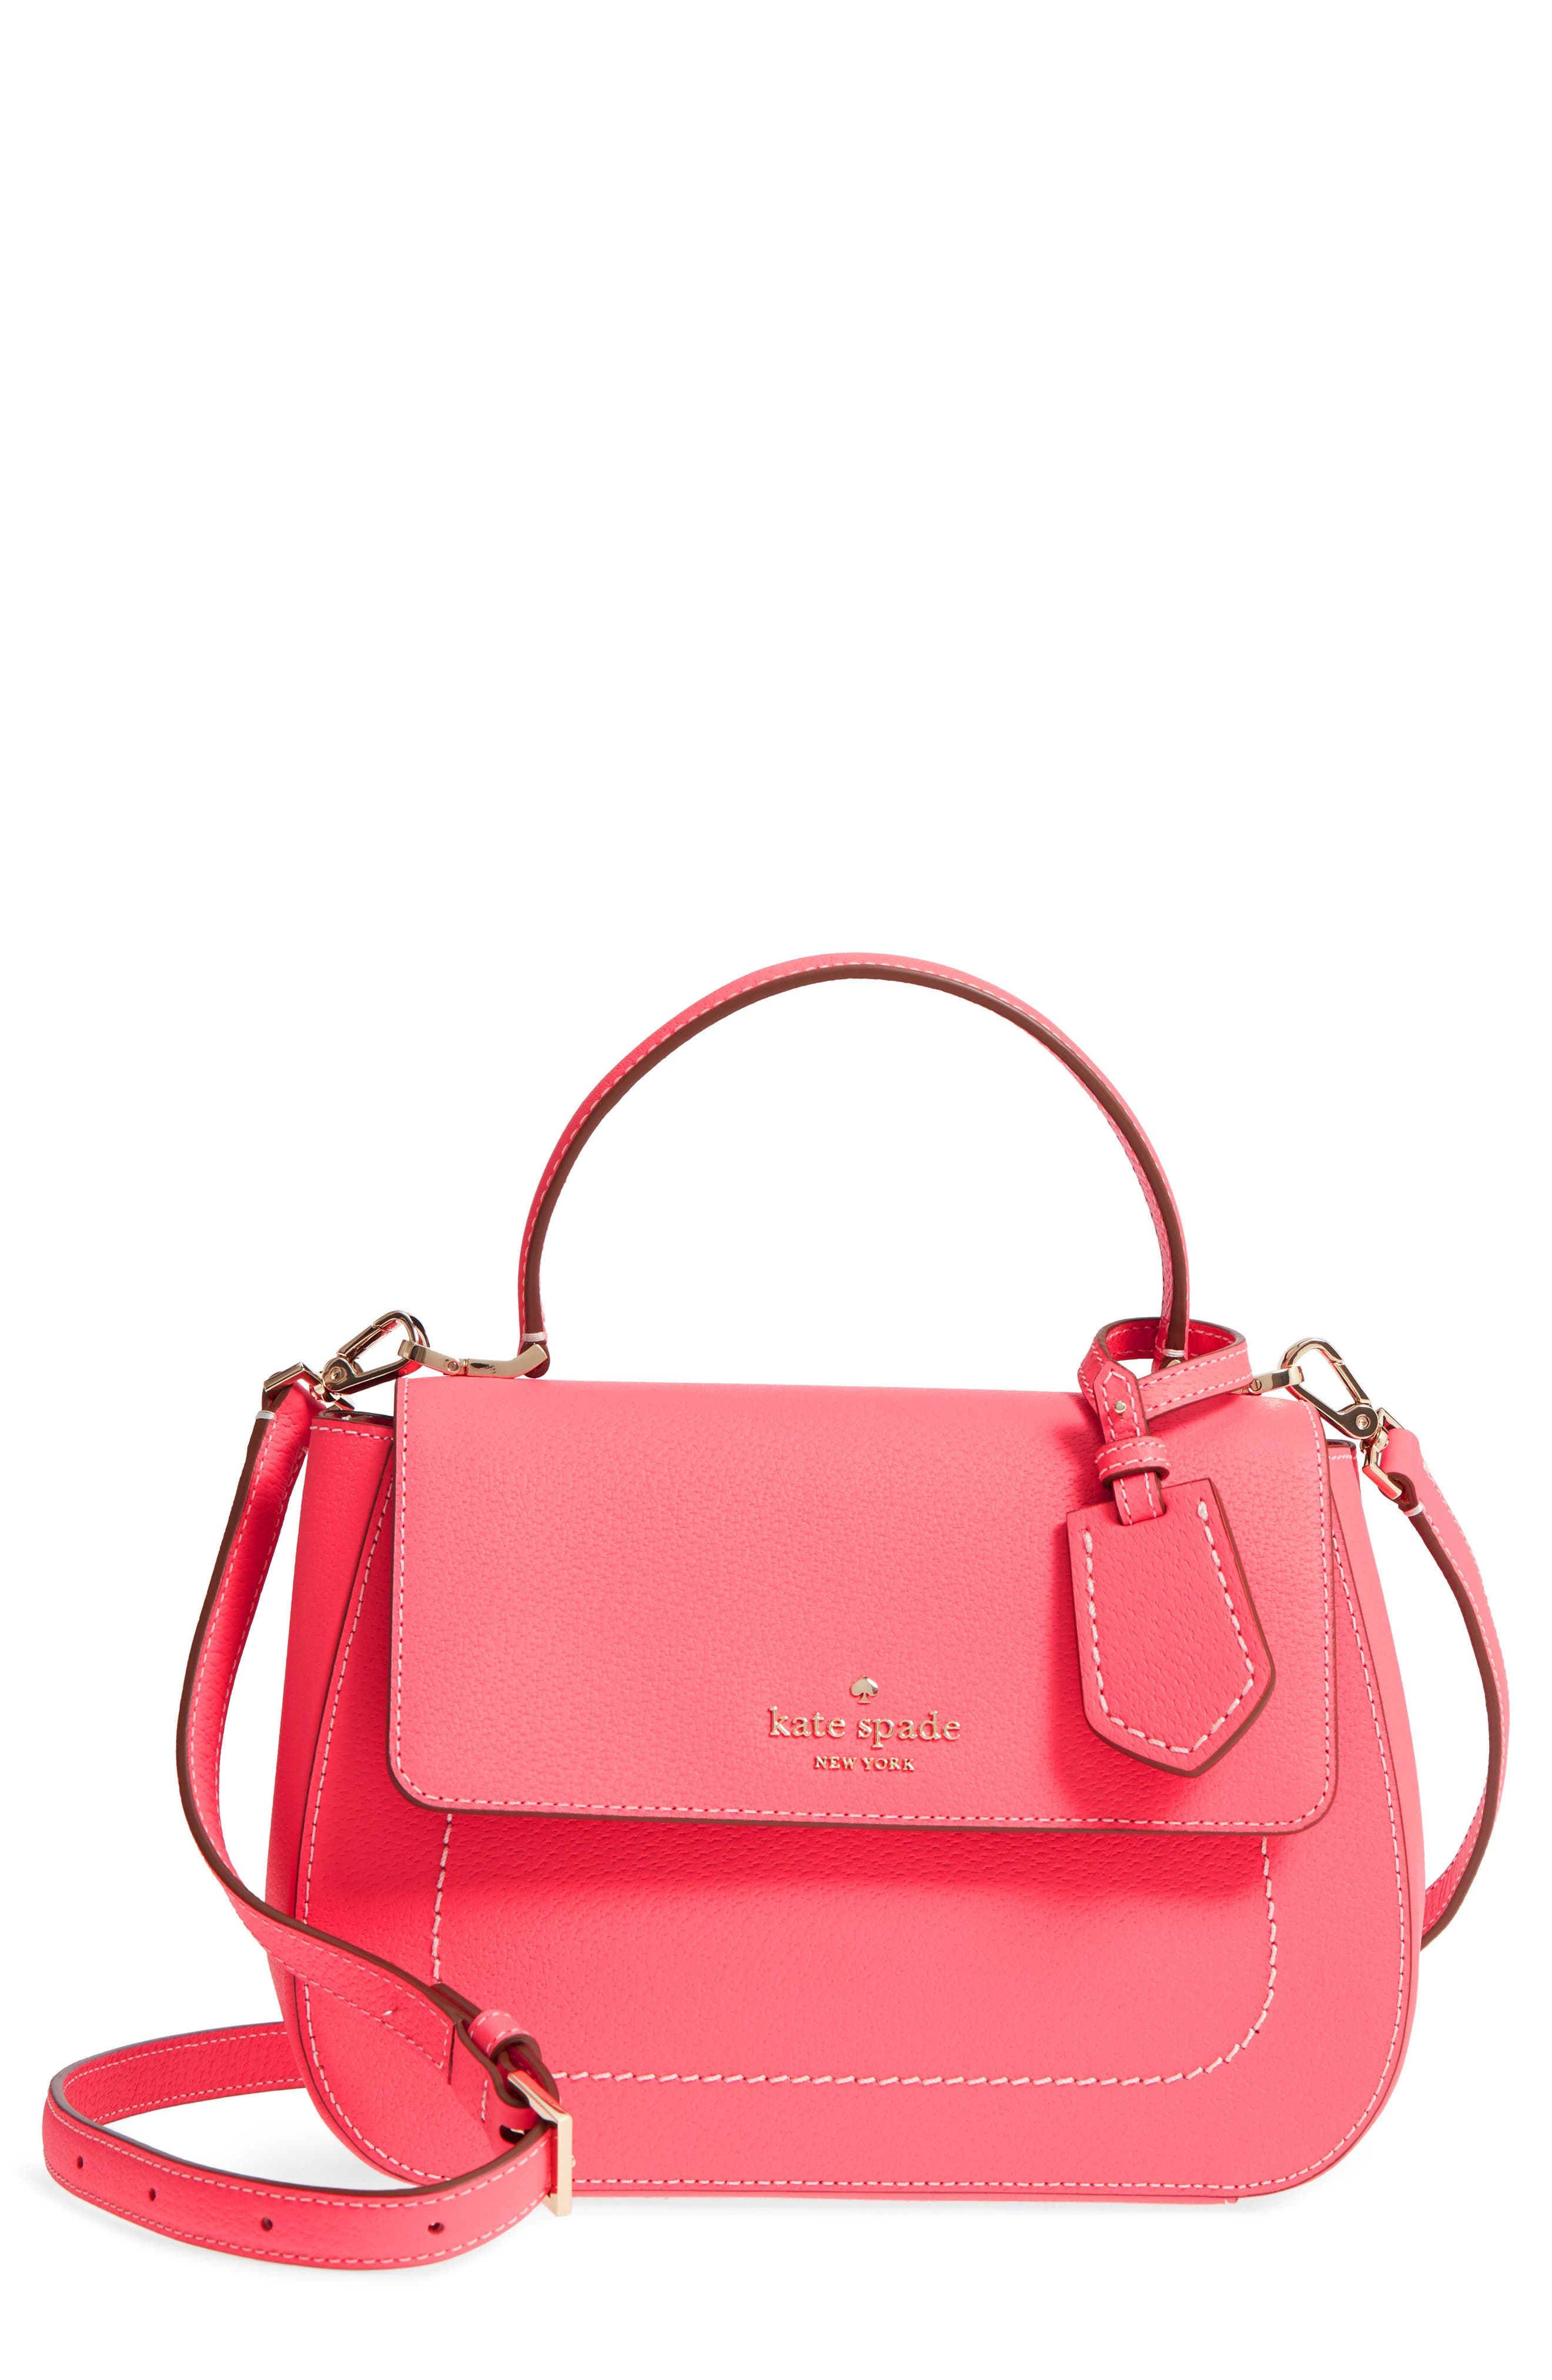 thompson street - justina leather satchel,                             Main thumbnail 1, color,                             650